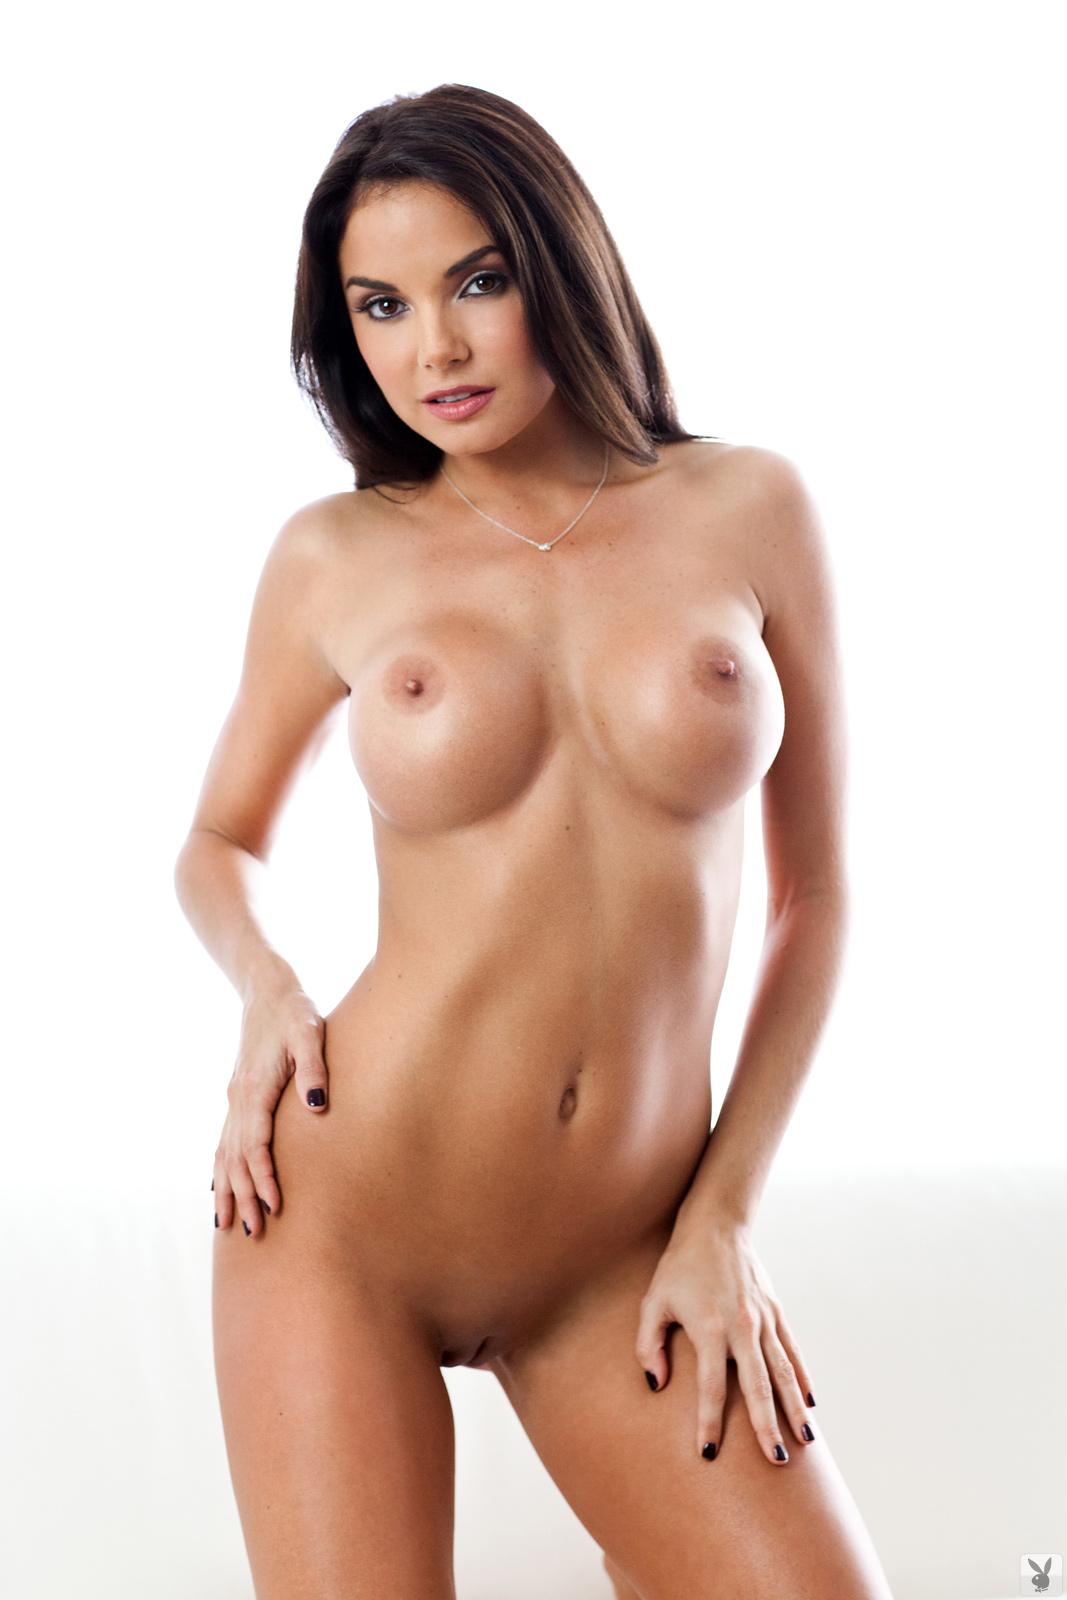 hillary fisher nude